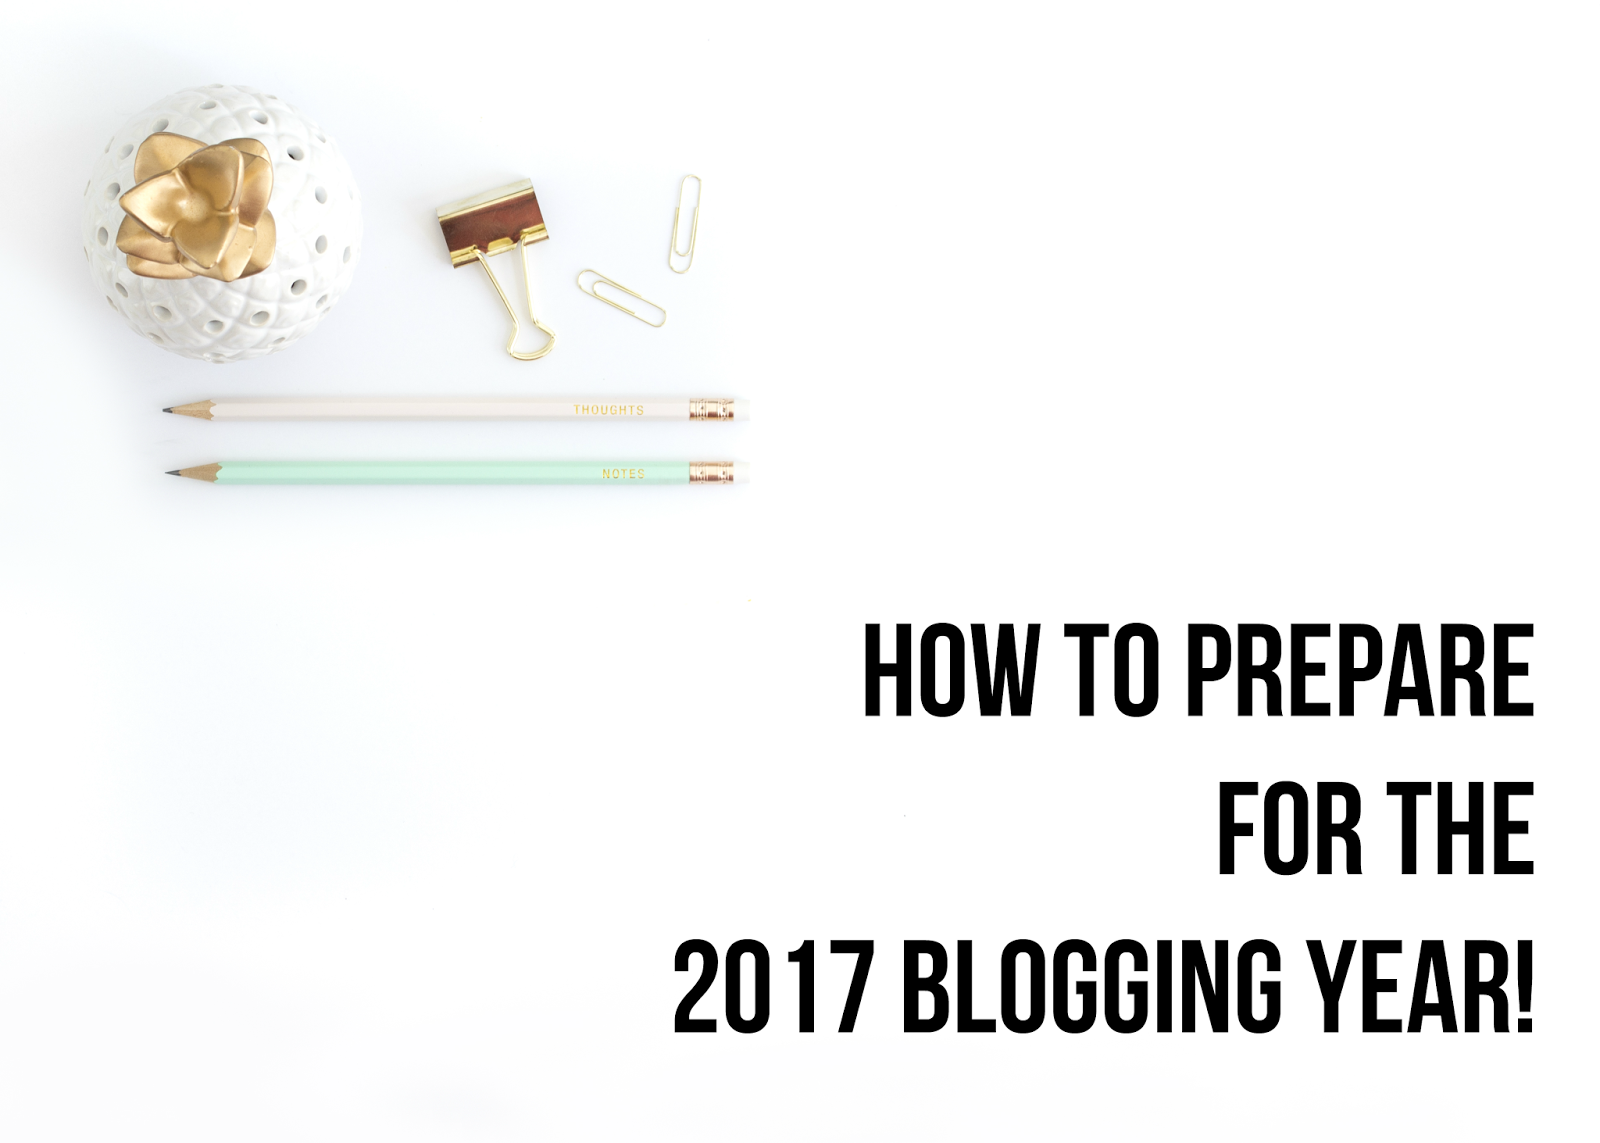 Blog Talk: How to Prepare for the 2017 Blogging Year!